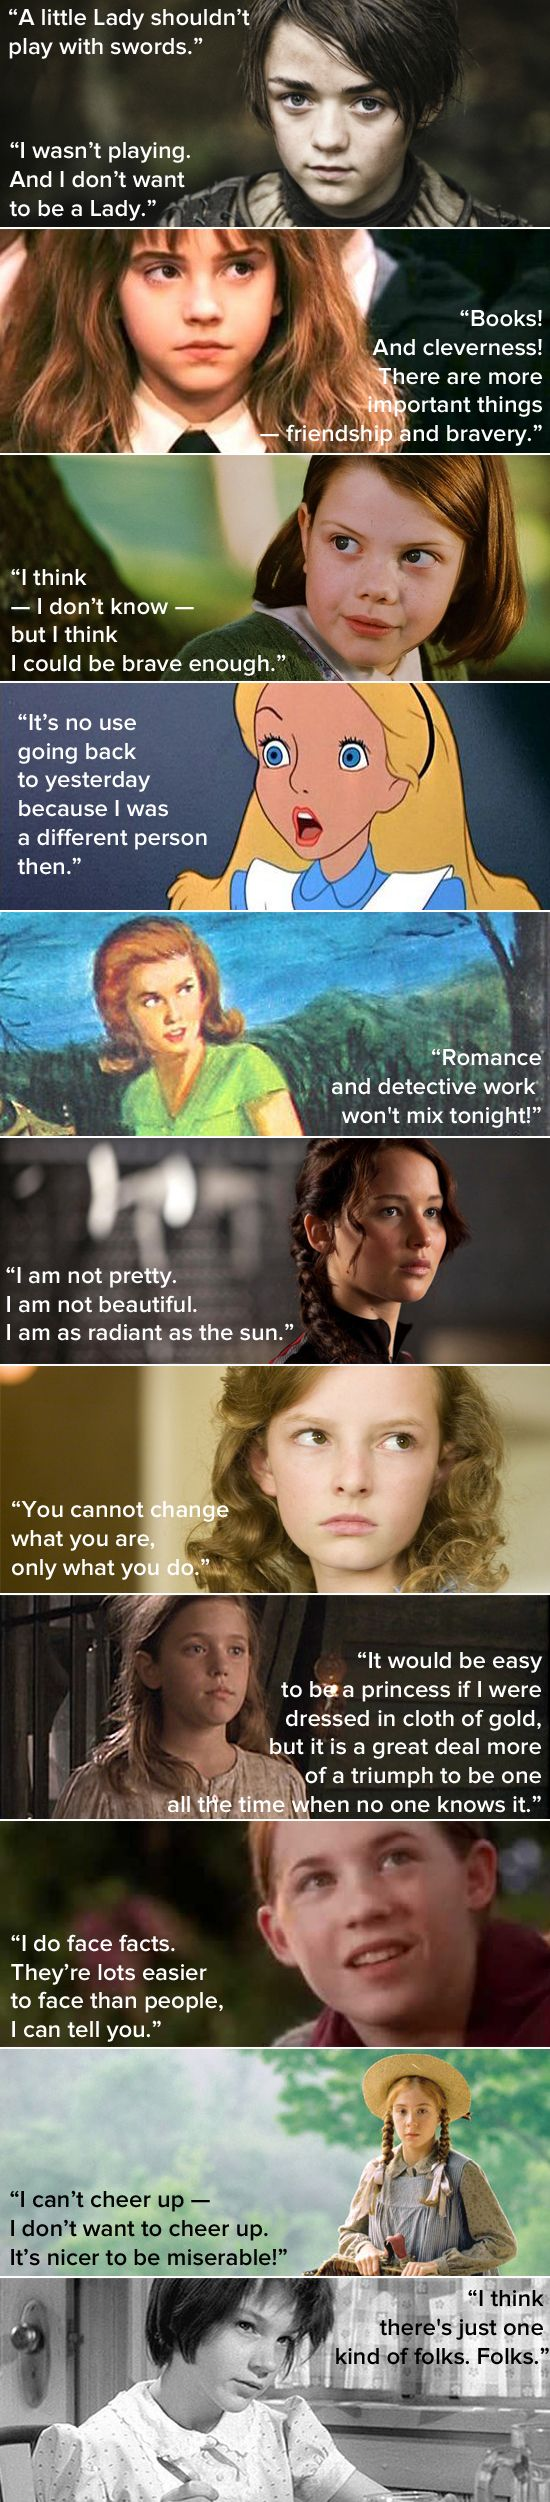 young heroines>>> It's good that they teach young girls to be fearless, smart and to follow their hearts. It's too bad that women in movies are usually reduced to dumb sex objects. Why can't grown women be featured like this ?